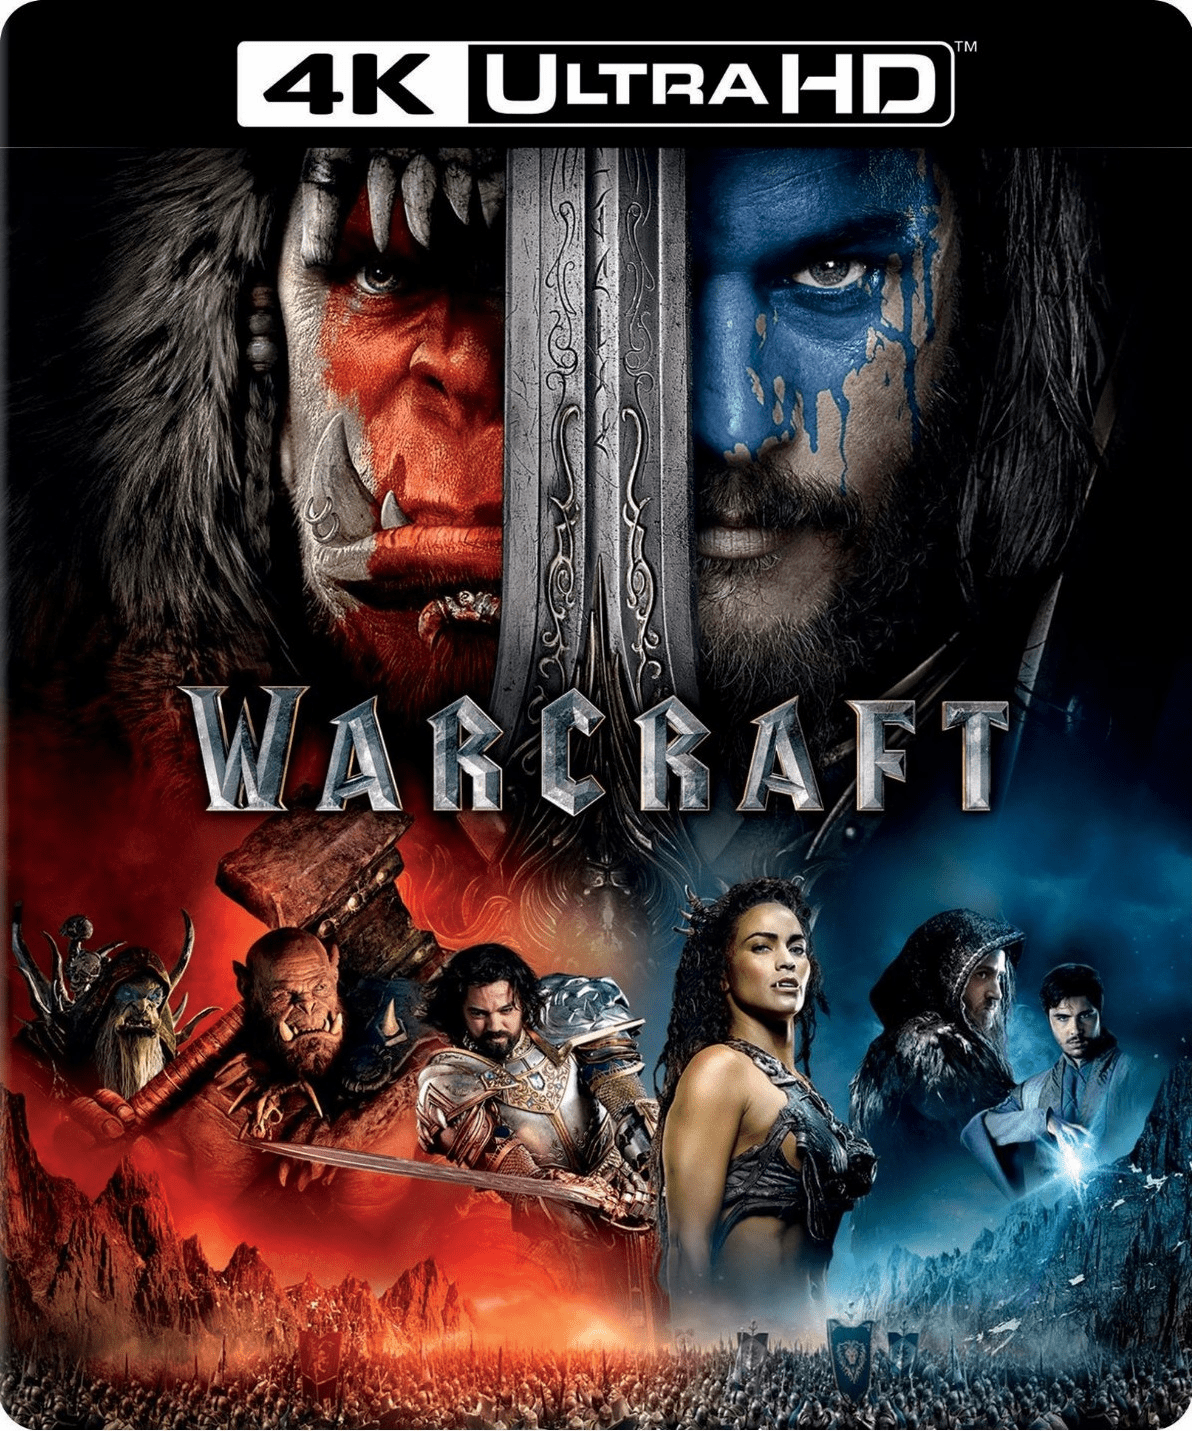 Warcraft 4K Ultra HD